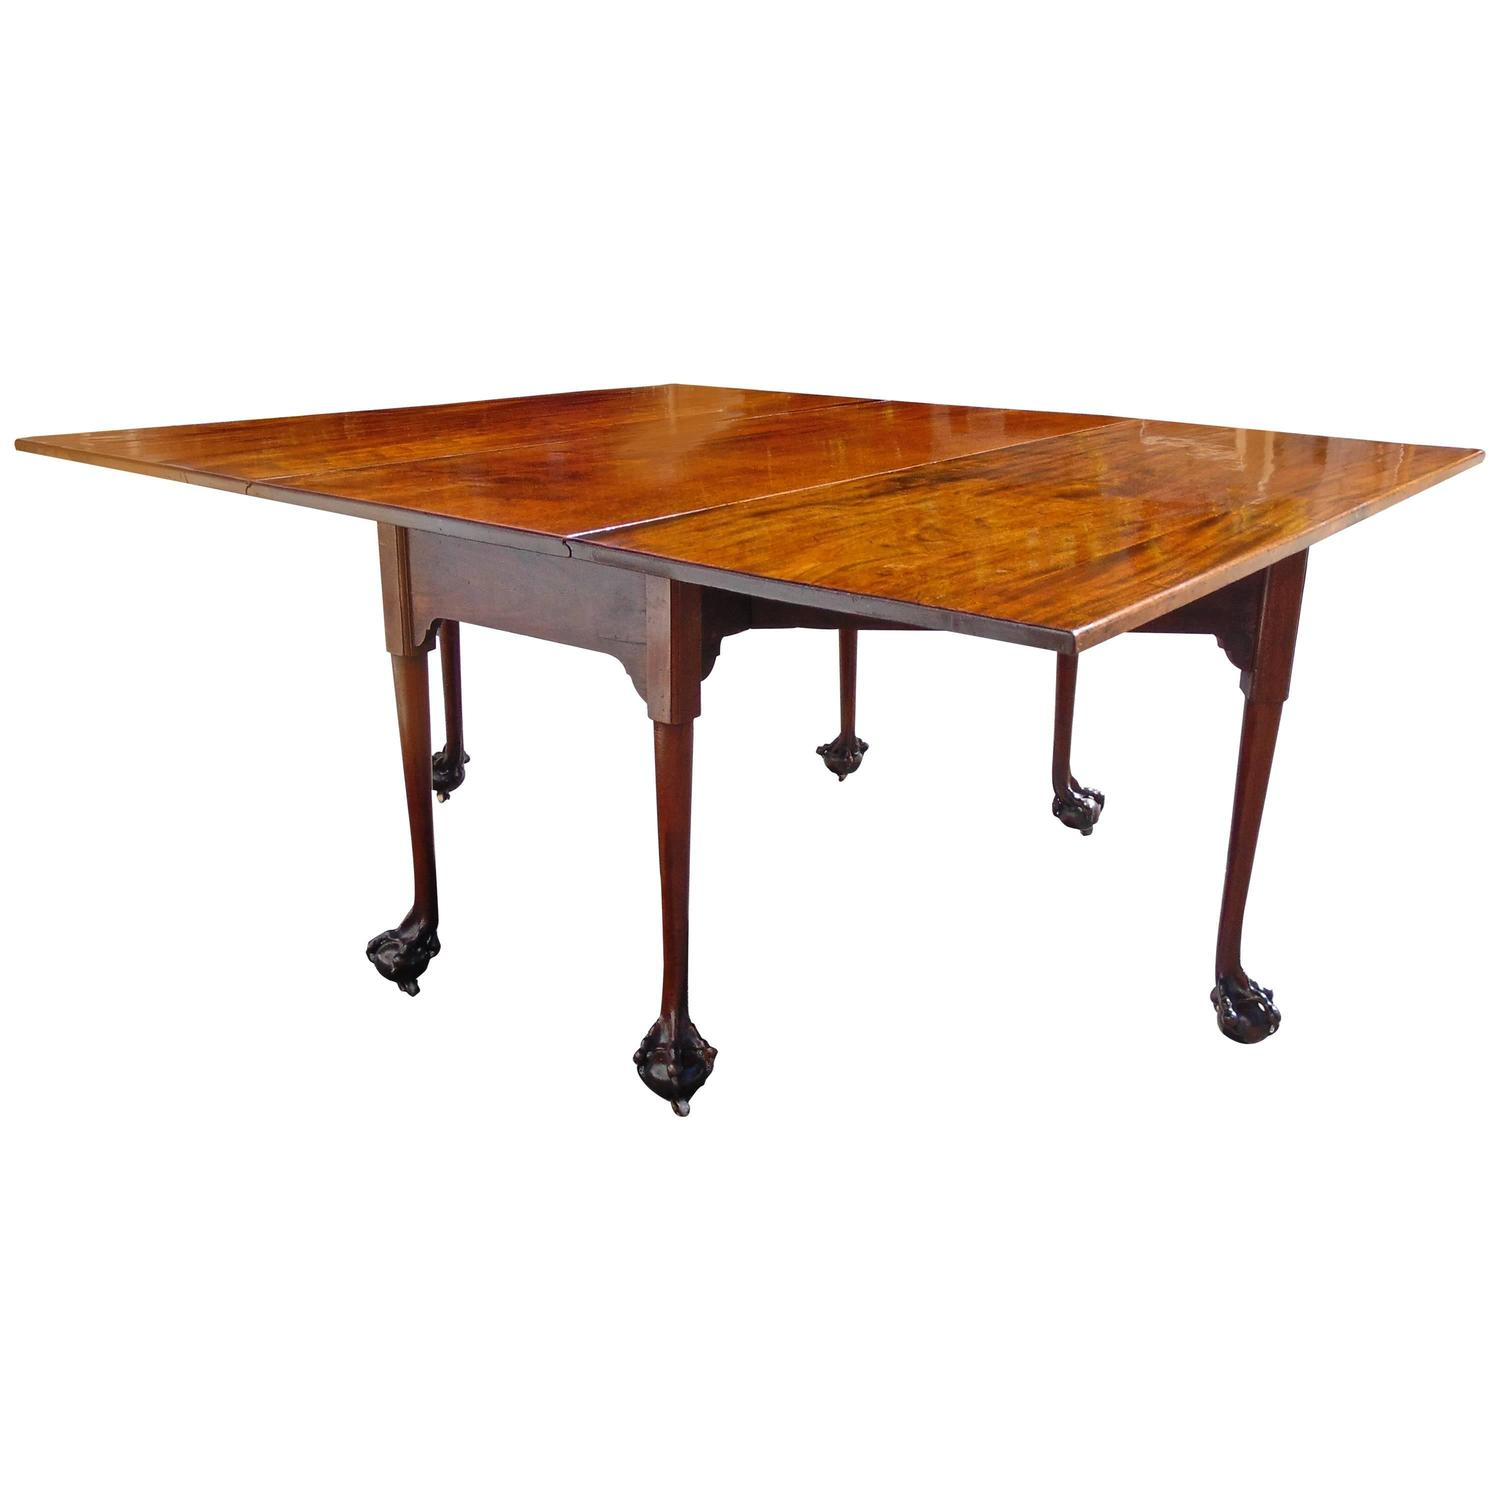 English Chippendale Reticulated Ball and Claw Foot Drop Leaf Table